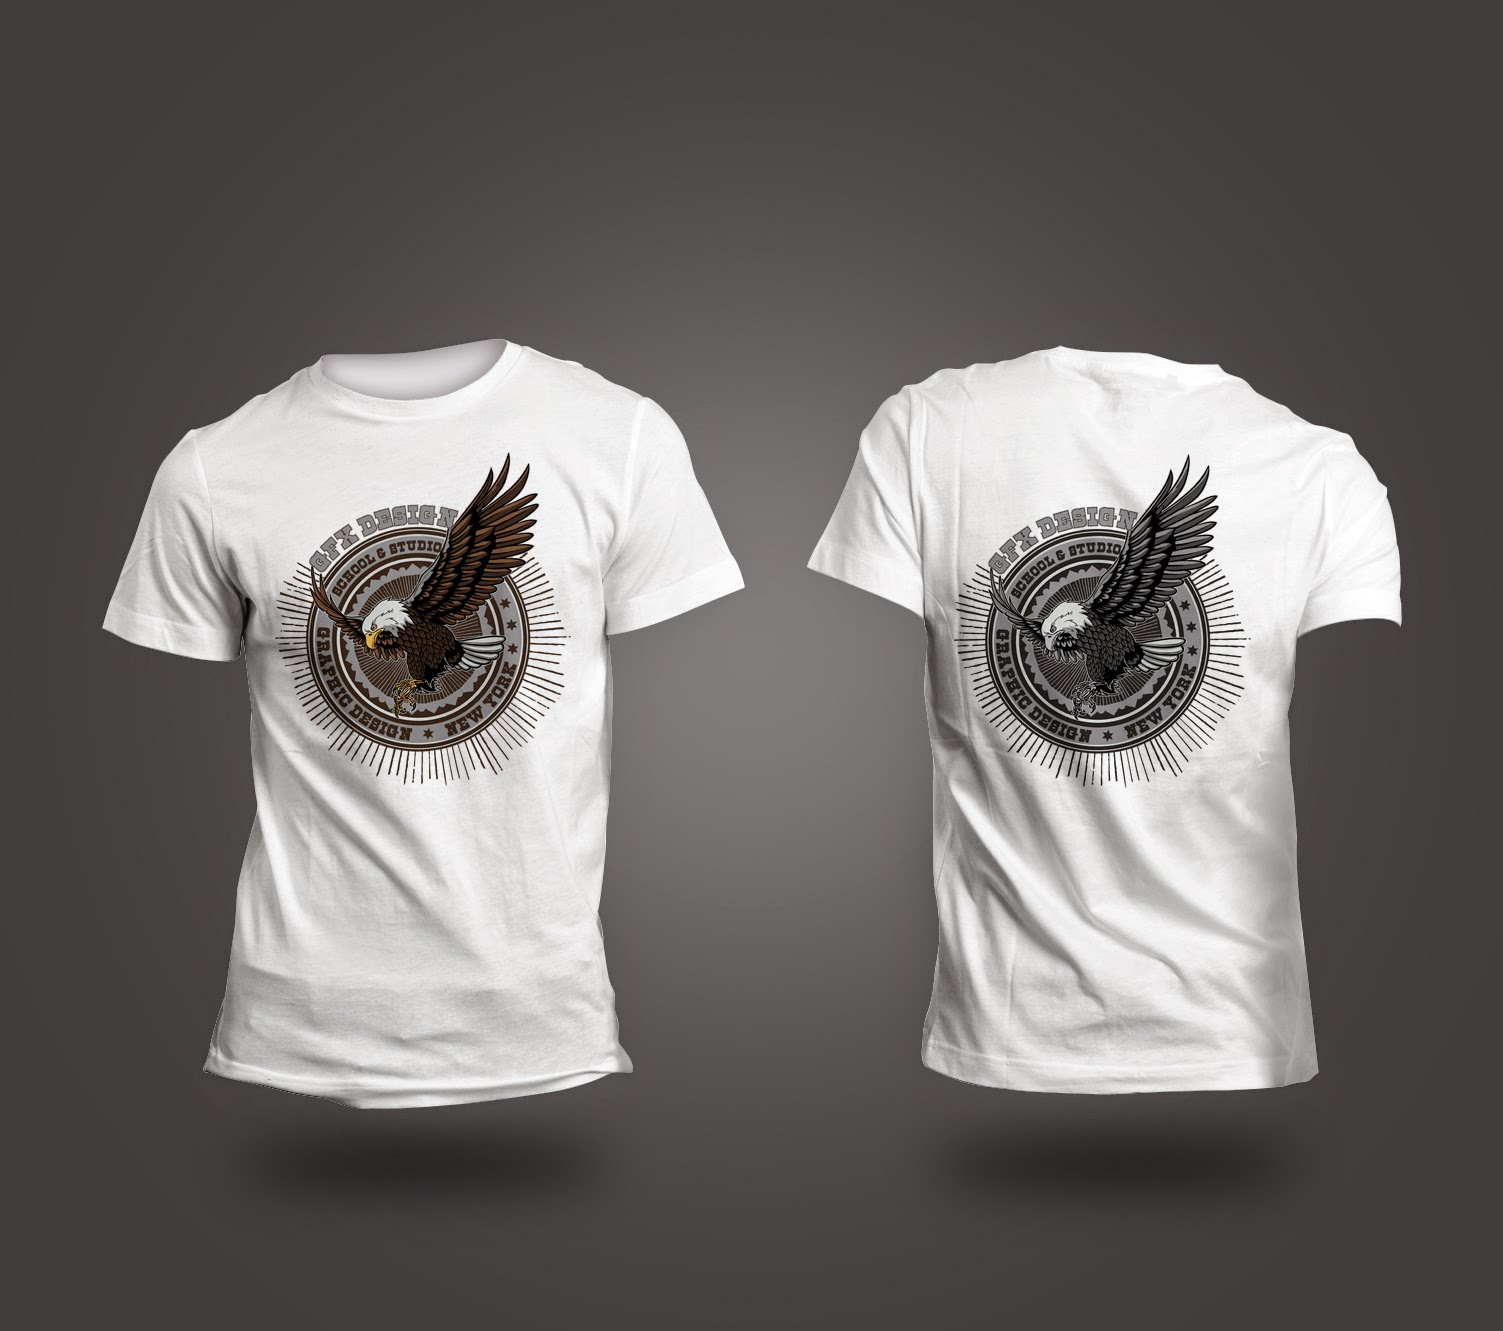 Design t shirt graphics online - Graphic Design Project Gfx School And Studio Of Design Online T Shirt Graphics Concept For 2014 Student Work Compilation